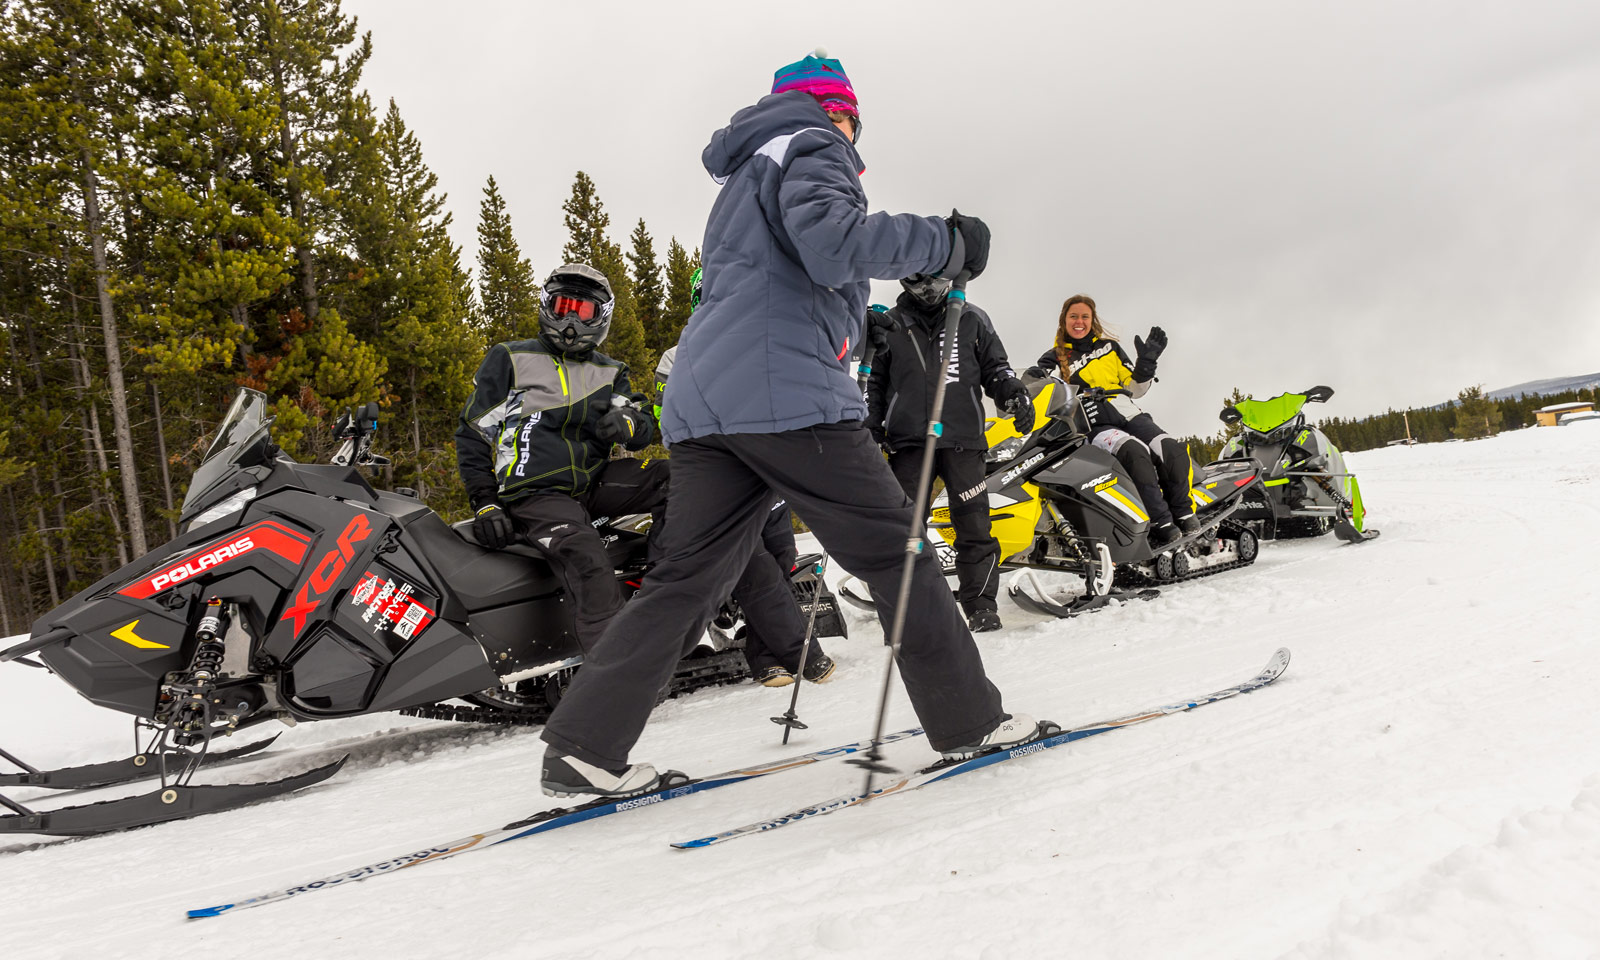 Snowmobilers encountering a cross-country skier